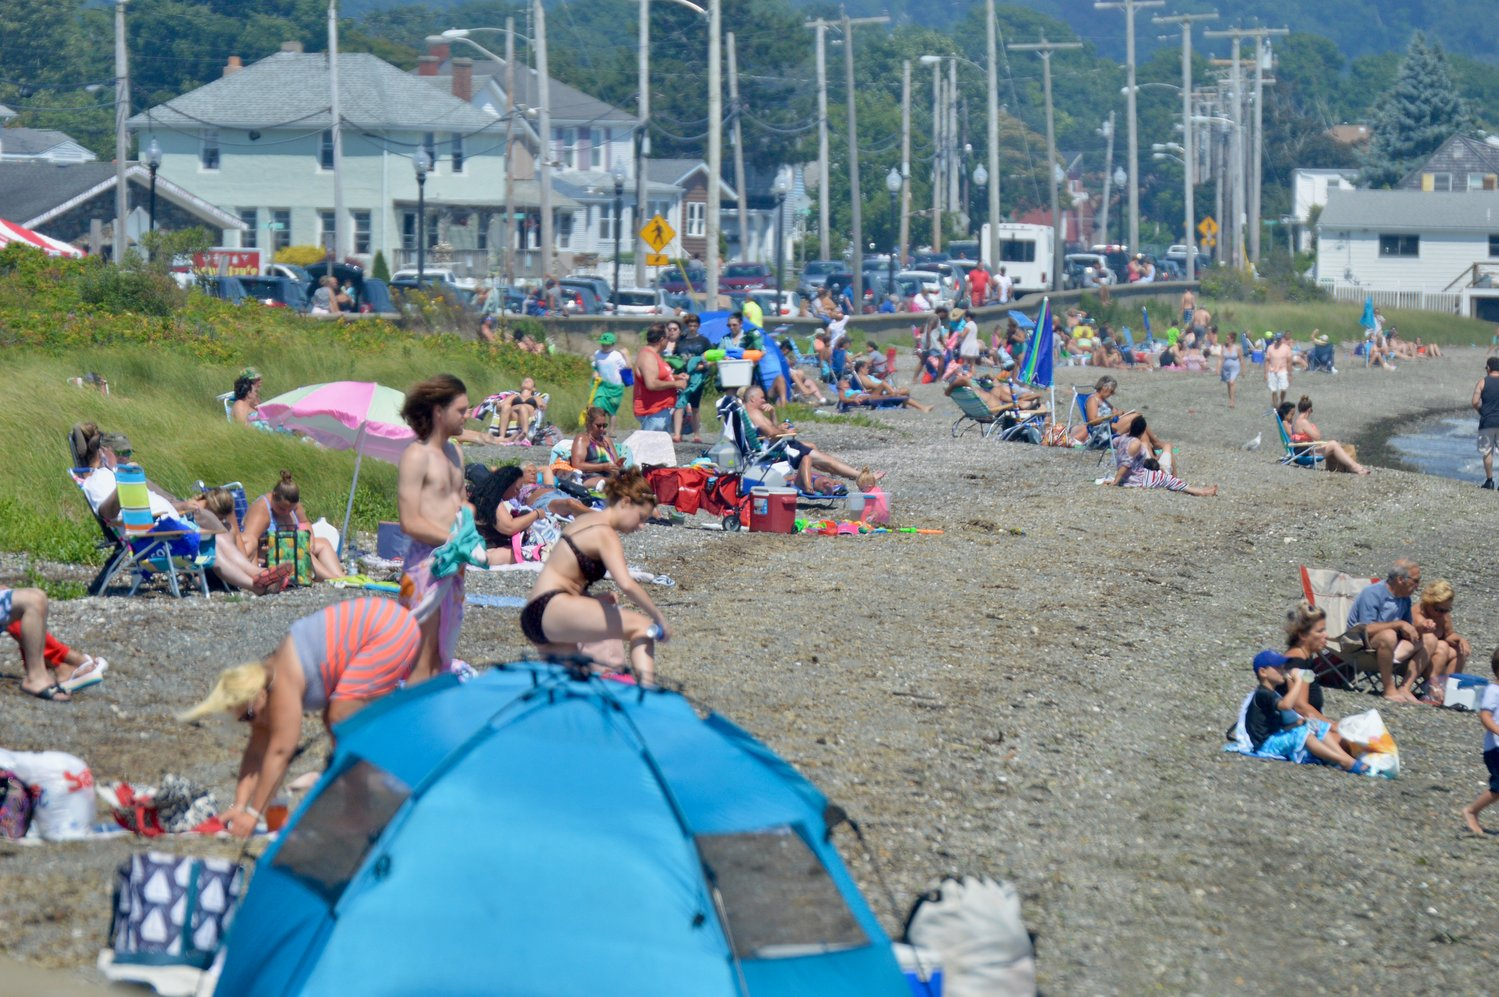 This is what the Island Park Beach looked like on the afternoon of July 19. Note the vehicles parked along Park Avenue. Town Administrator Richard Rainer, Jr. said police are patrolling the area on a regular basis, but cannot prohibit vehicles with out-of-state plates from parking there.